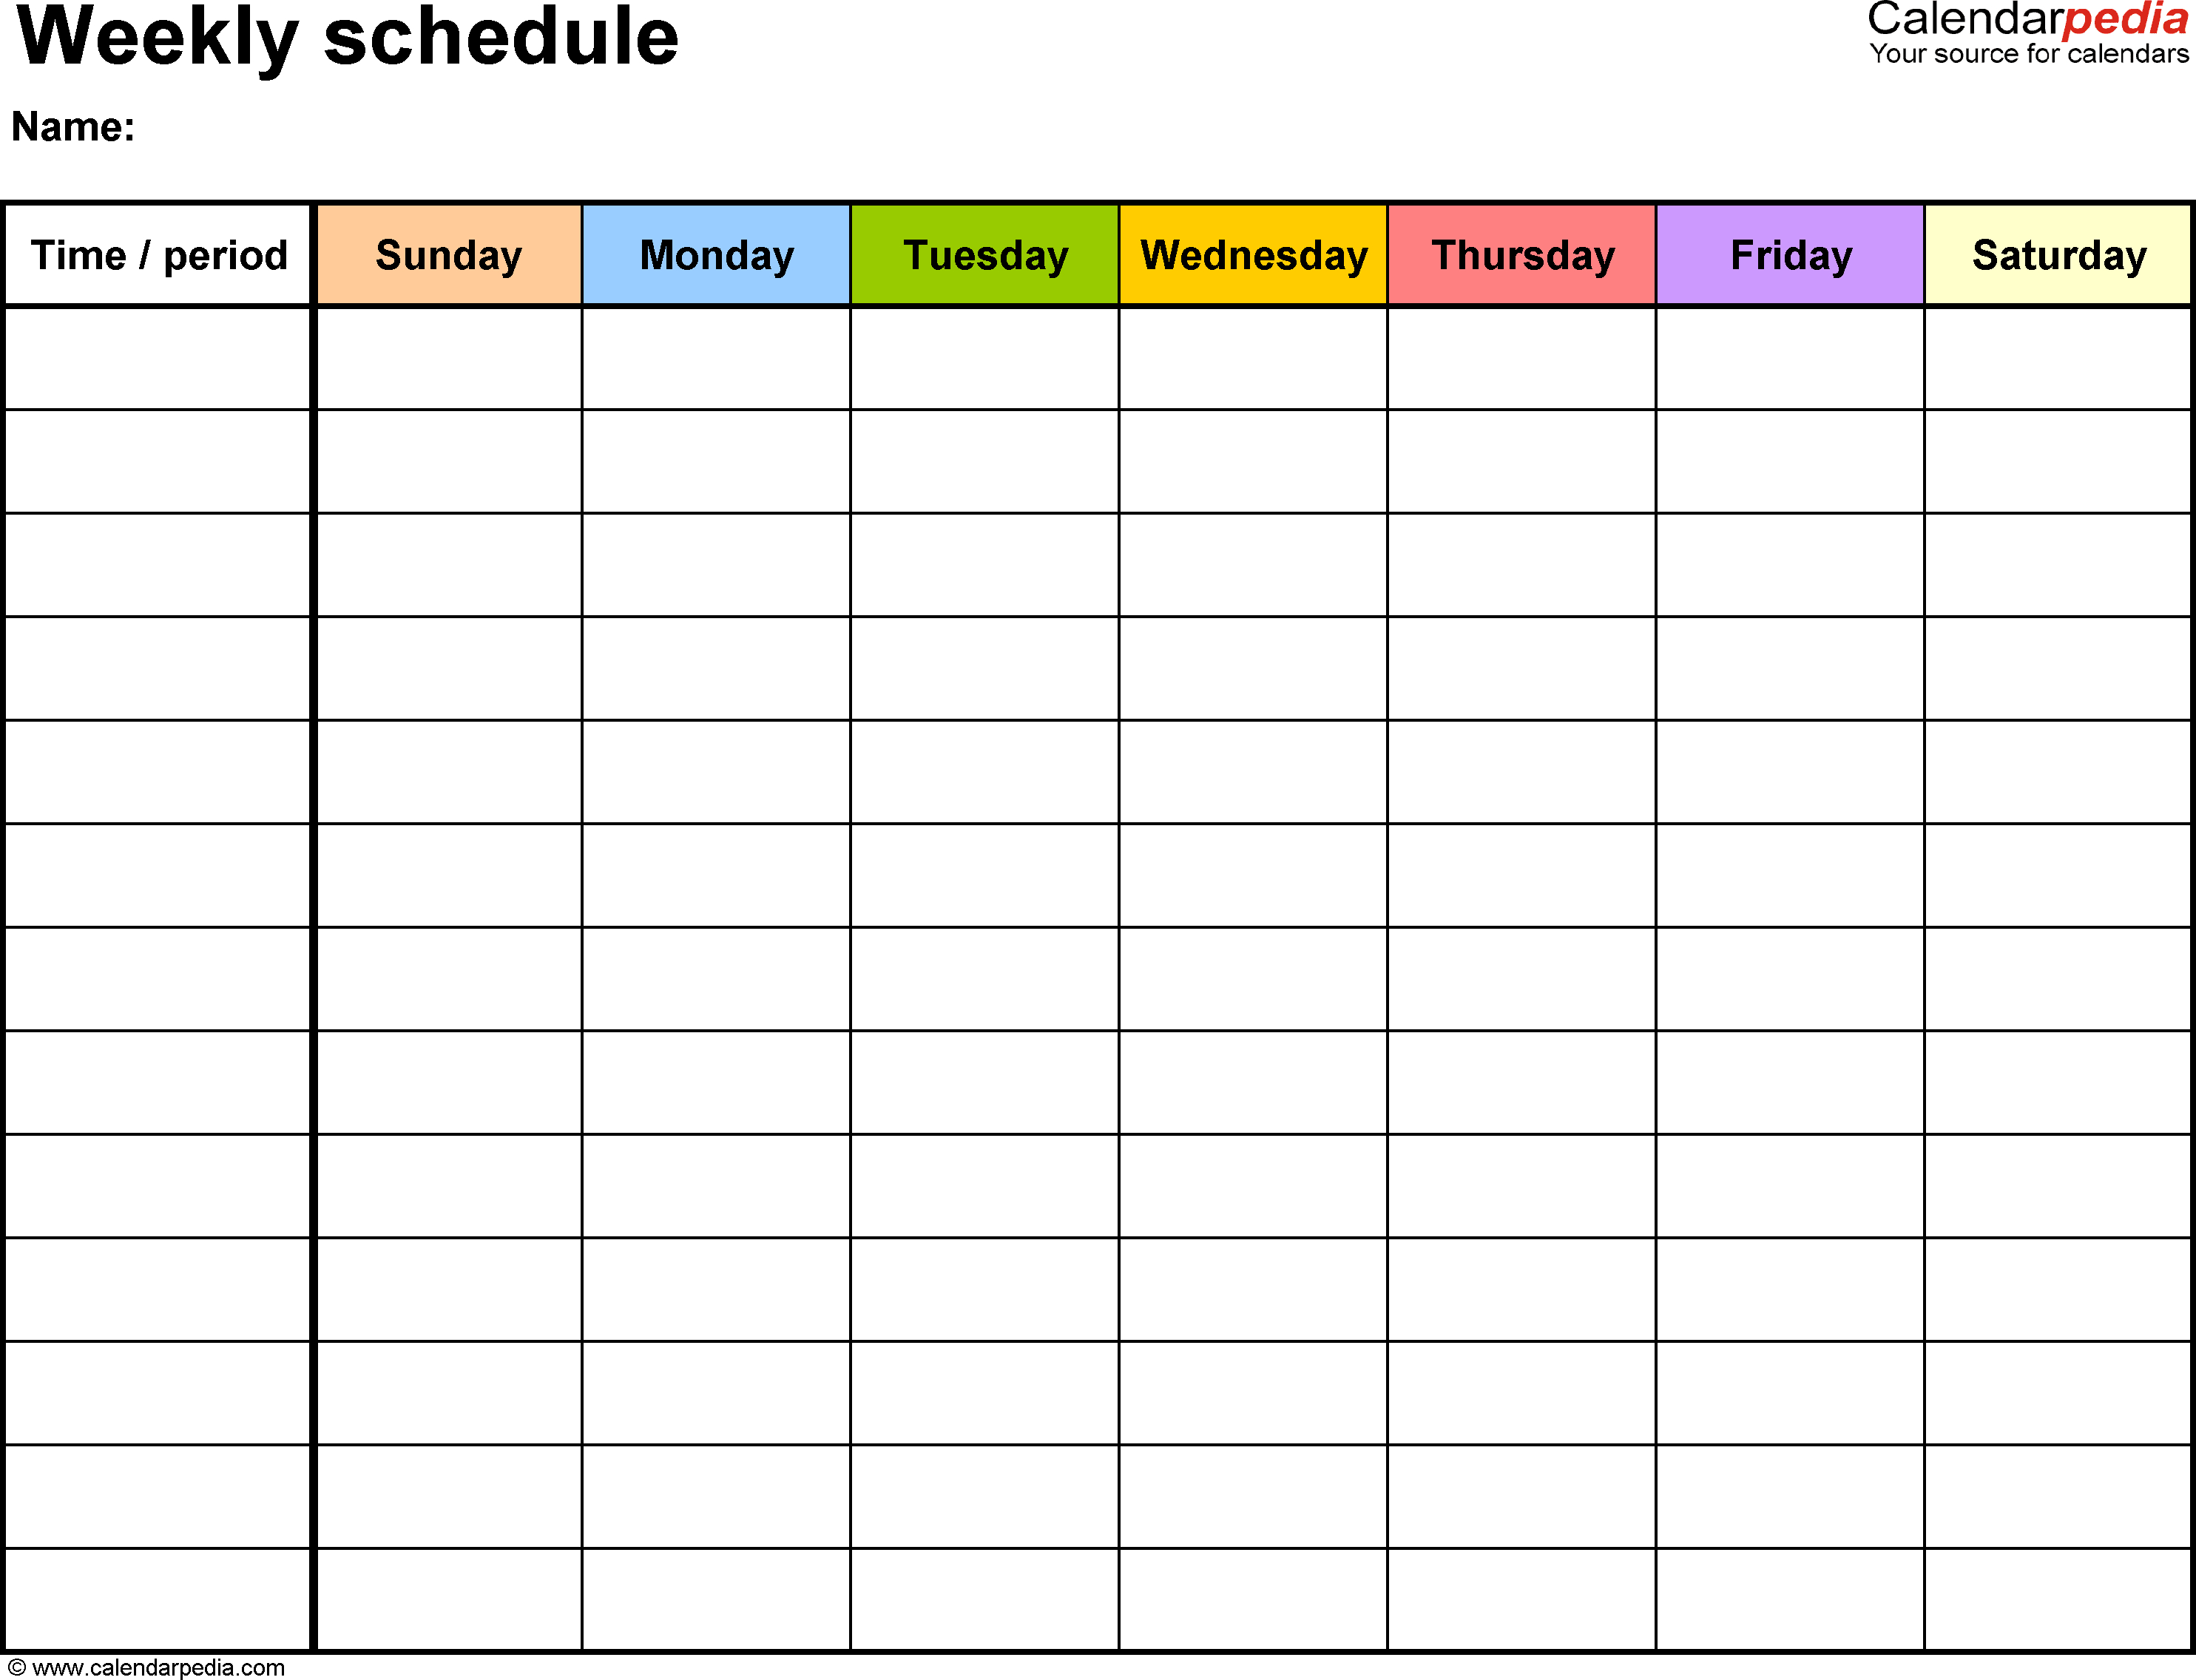 Free Weekly Schedule Templates For Excel - 18 Templates regarding Monthly Planner Template For Children